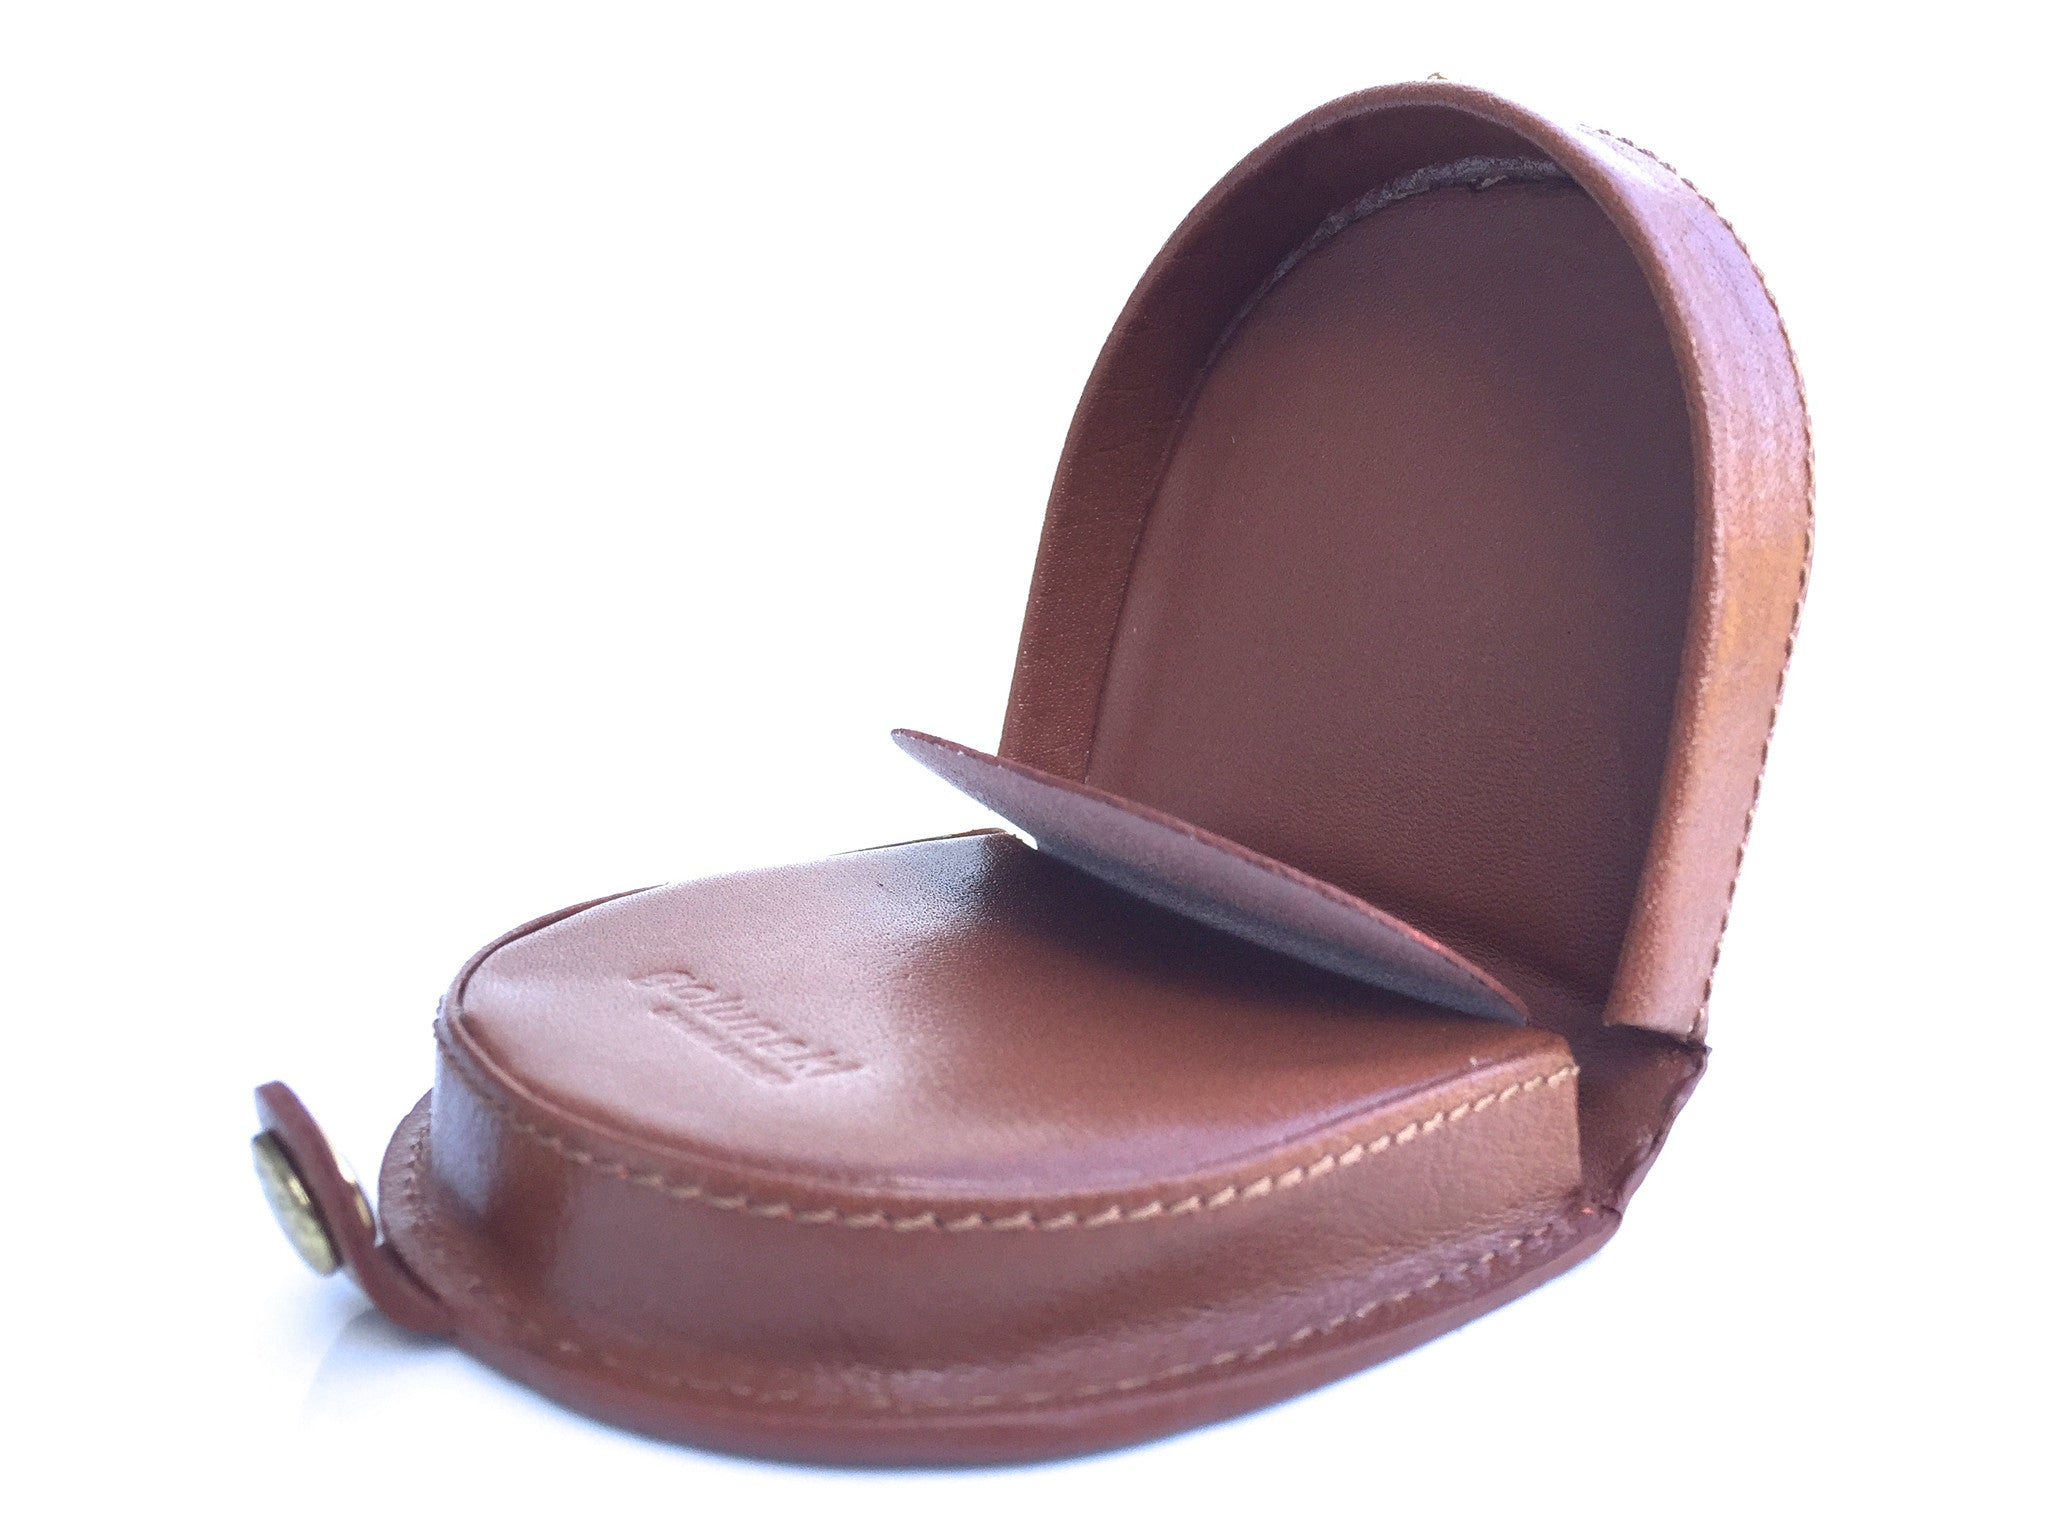 5b9c7cb61 ... Style 143: Mens Leather Horseshoe Coin Tray Purse In Tan By Golunski -  - 7 ...